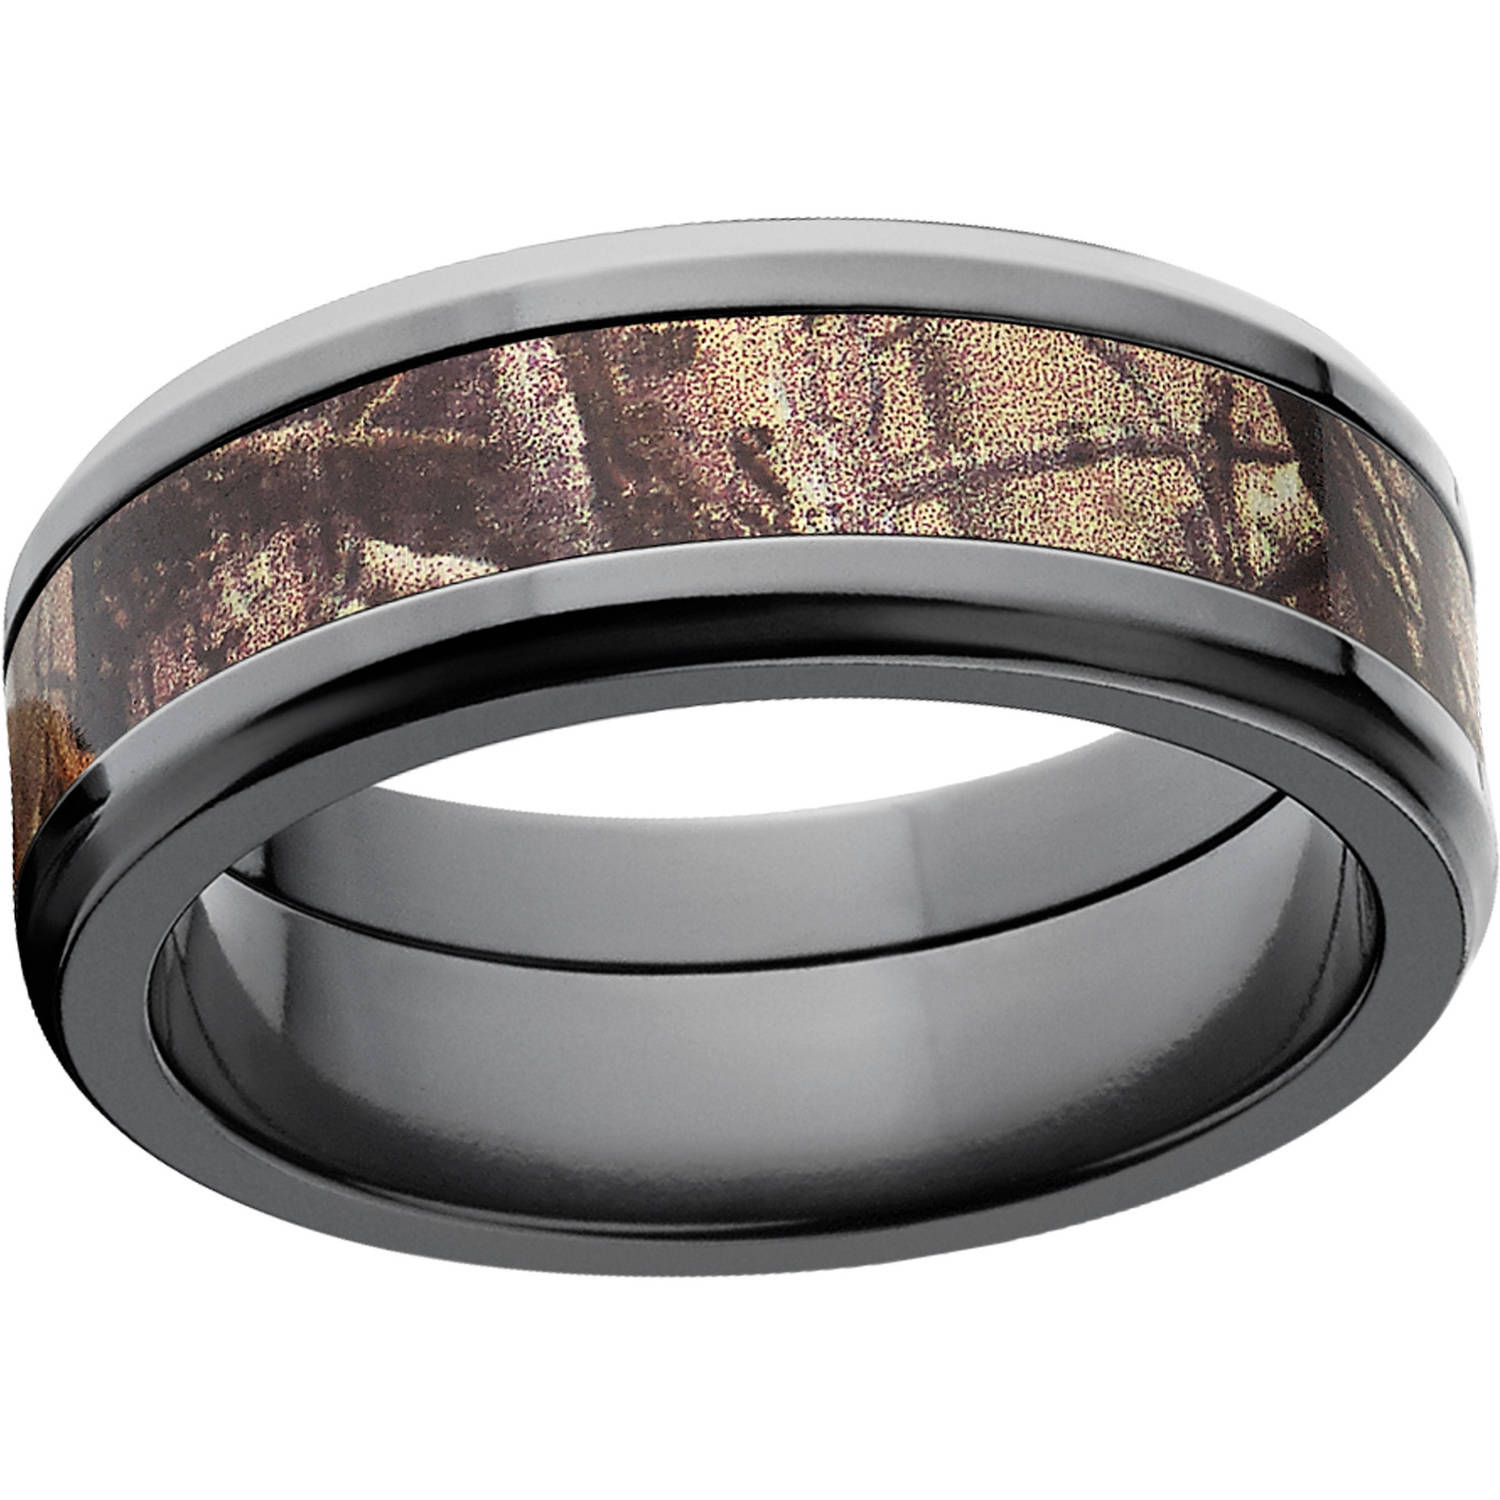 edge amazon mens plated wedding inlay tungsten mnh for black band beveled com men dp carbon fiber rose bands rings gold